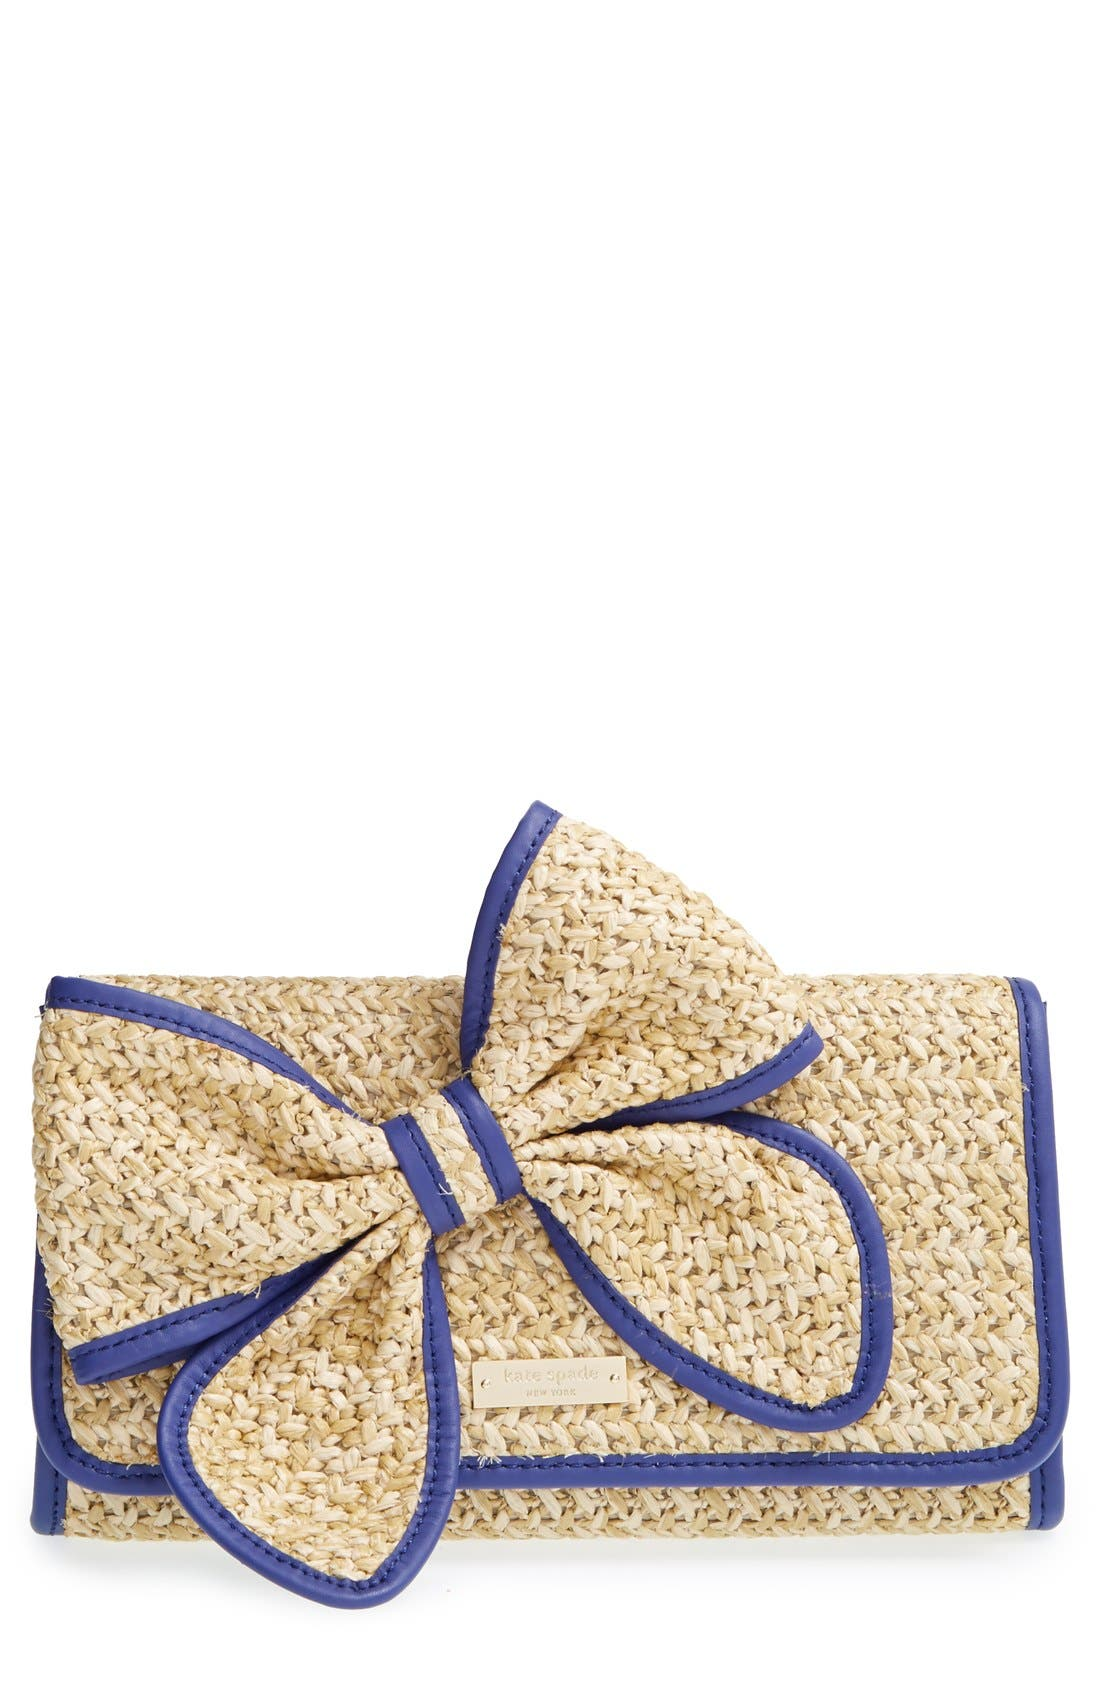 Alternate Image 1 Selected - kate spade new york 'belle place - viv' straw clutch